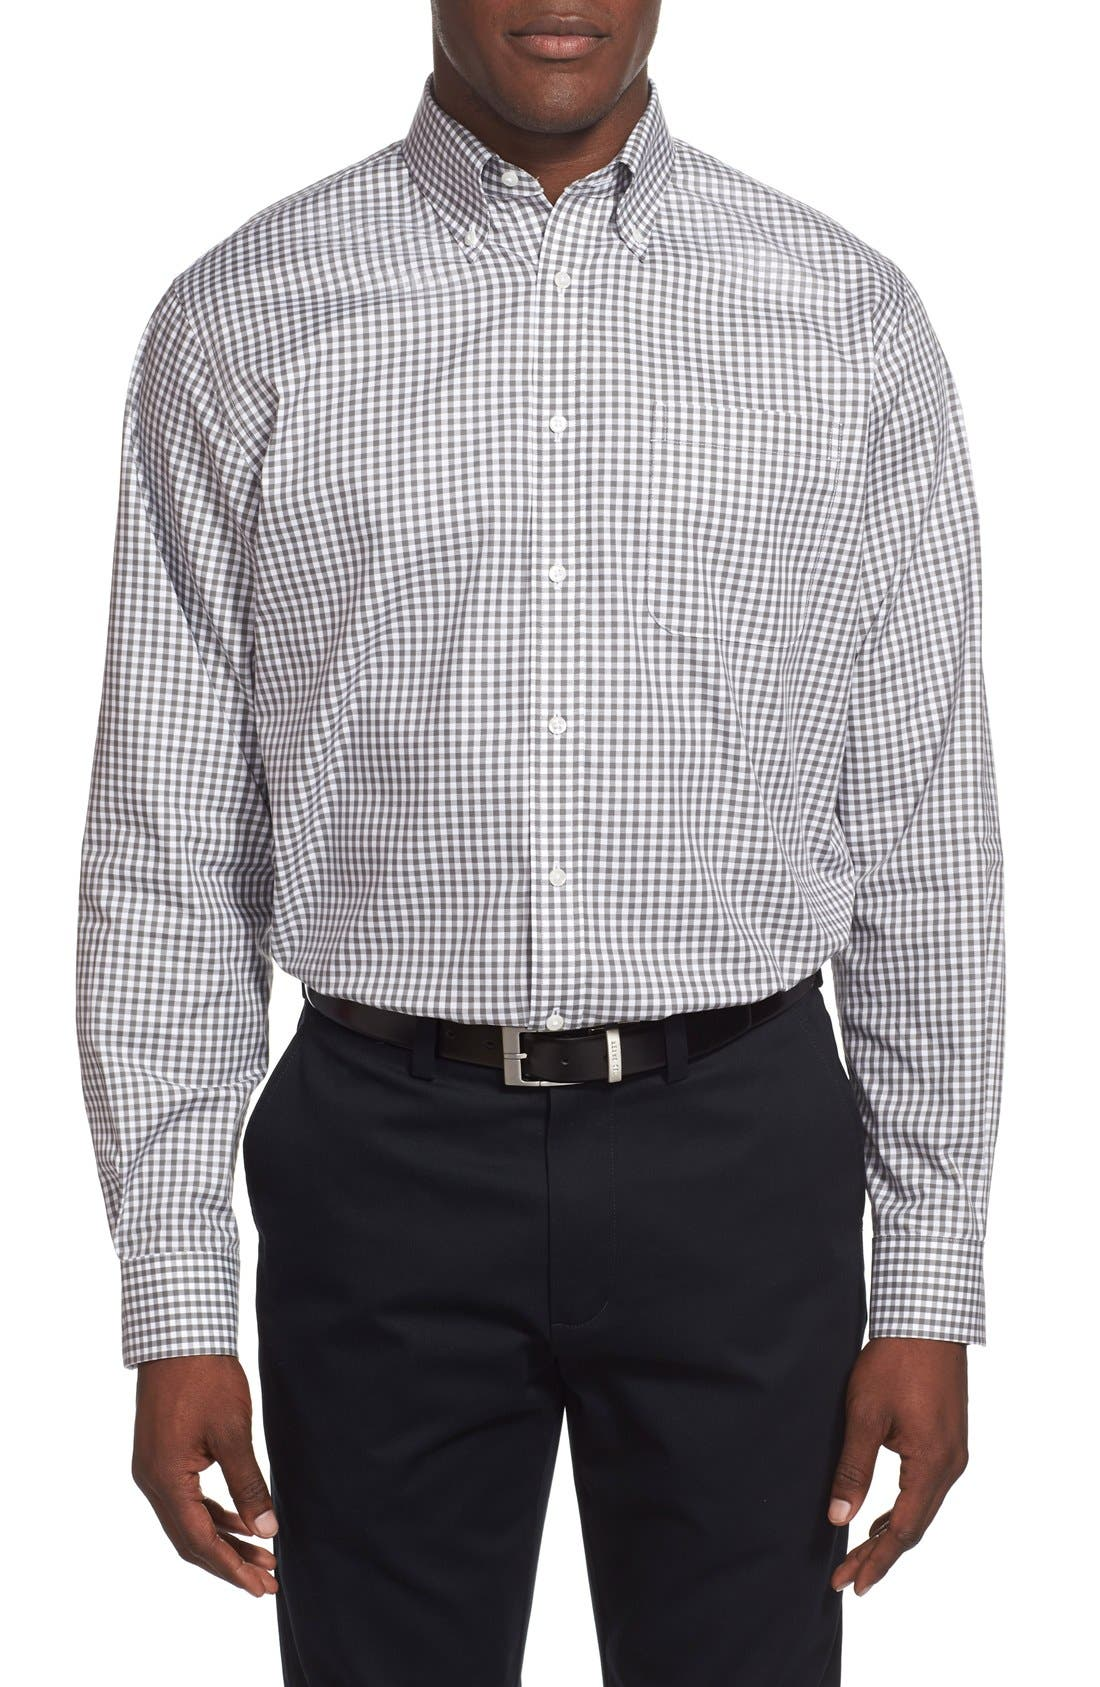 Nordstrom Men's Shop Traditional Fit Non-Iron Gingham Dress Shirt